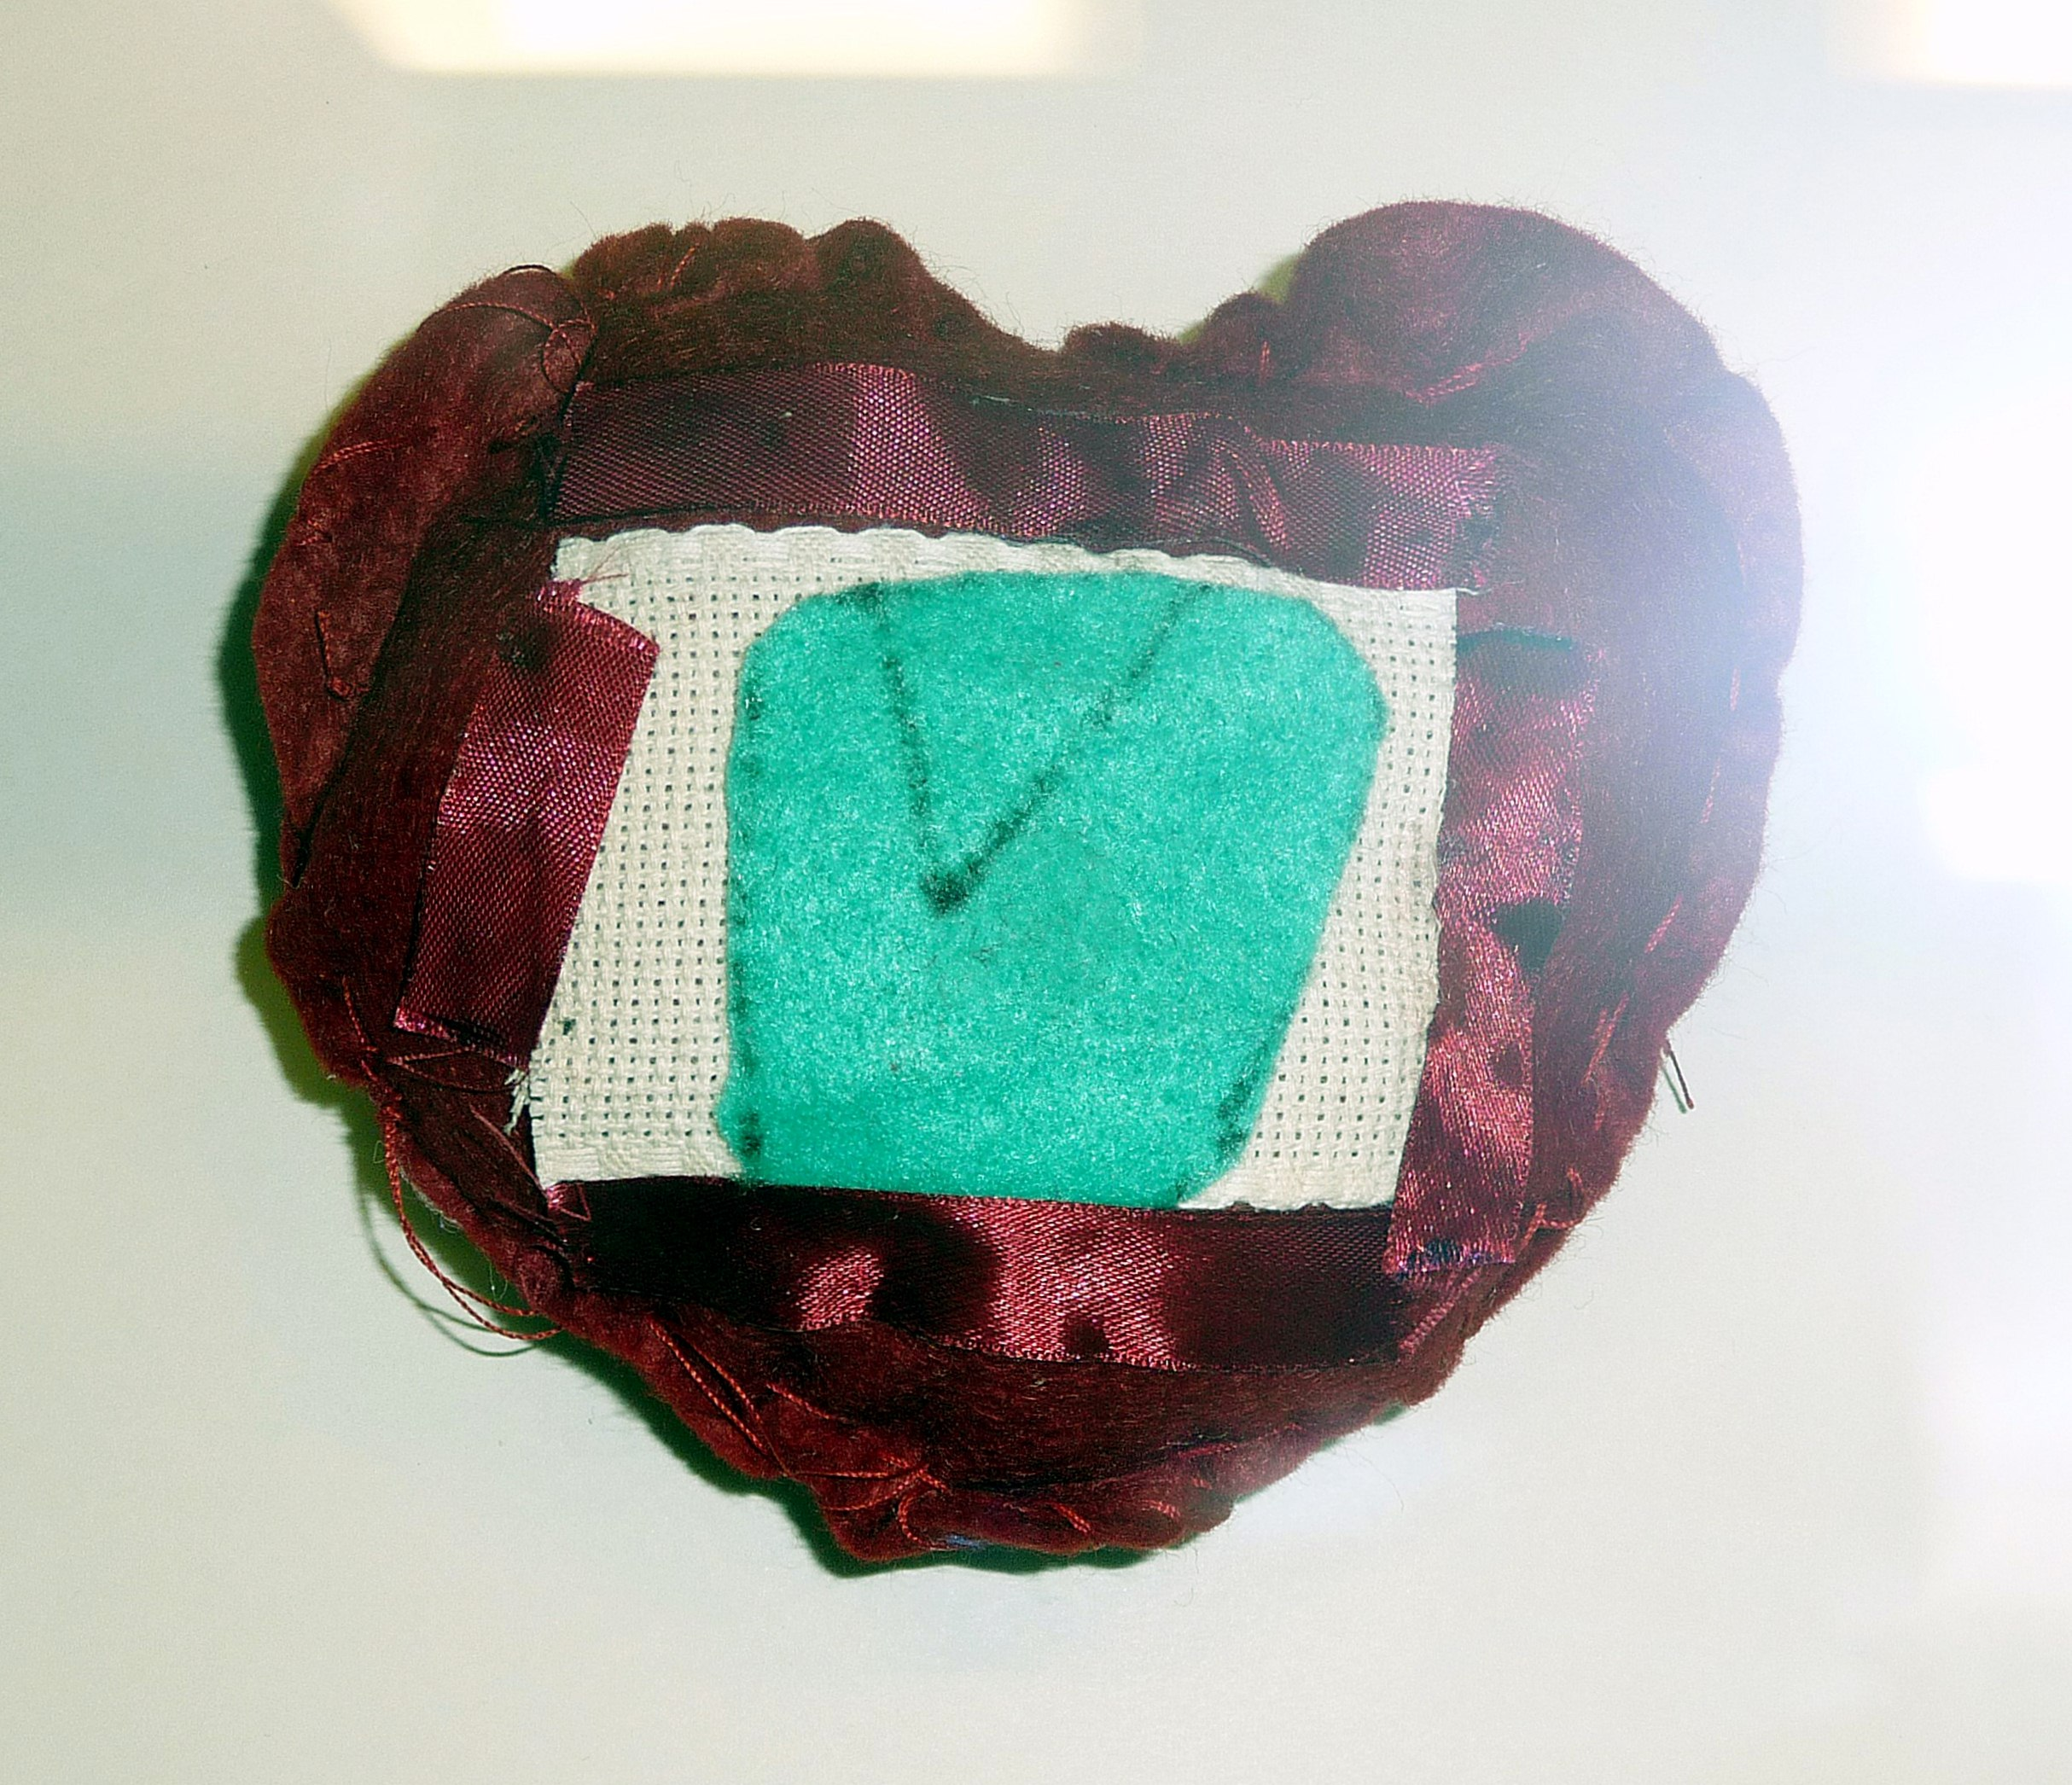 pincushion to commemorate World War 1 made by Jack Reynolds from Lansbury Bridge School, St Helens